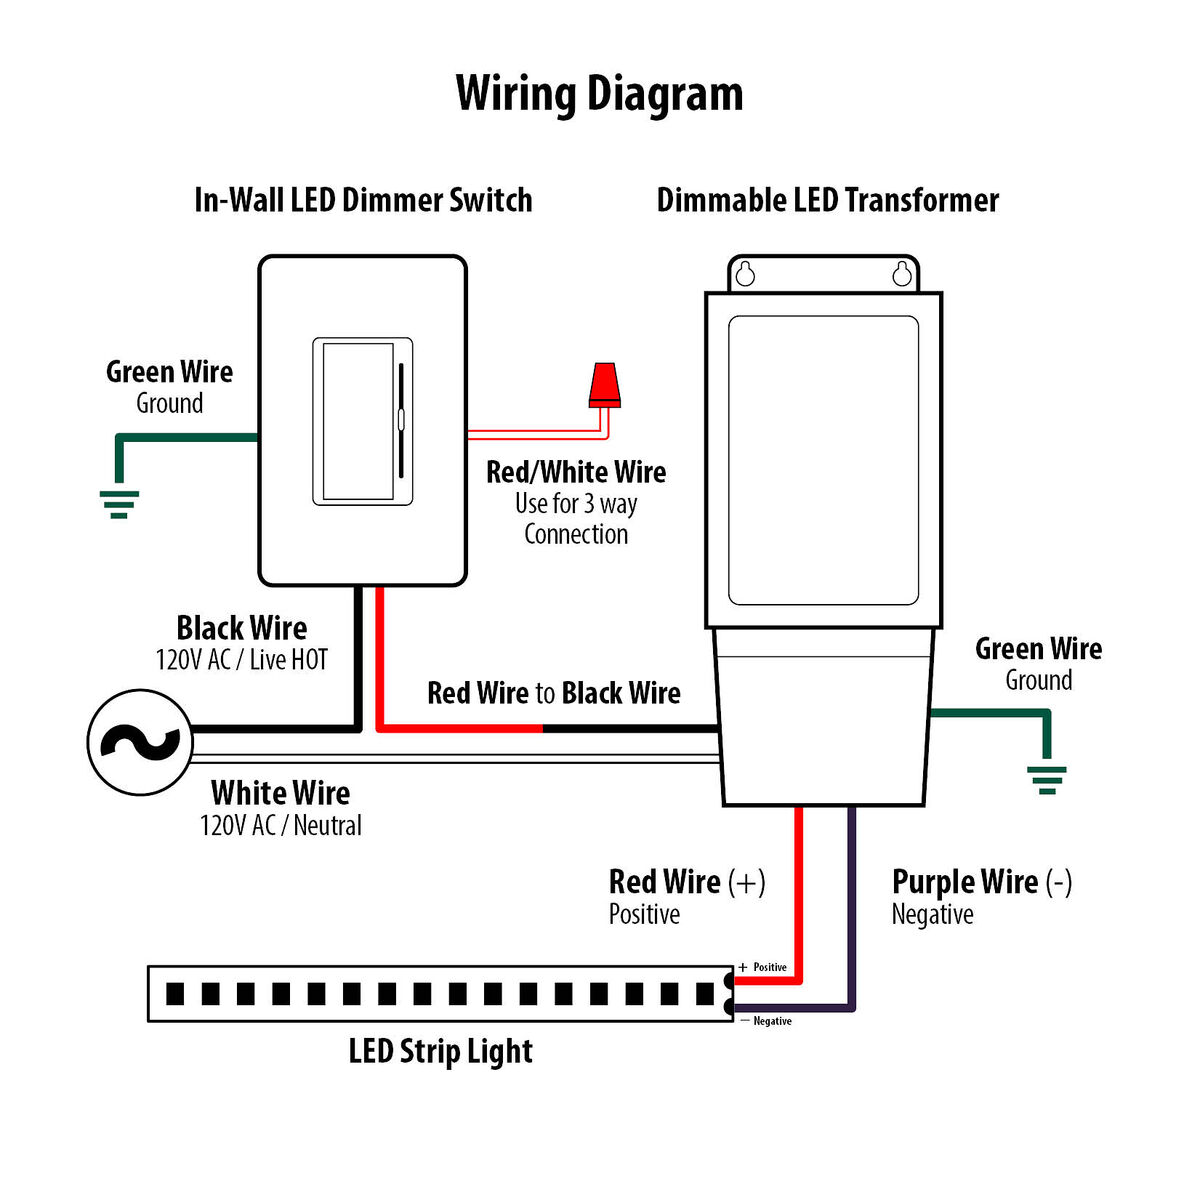 Led Dimmer Switch Wiring Diagram from www.solidapollo.com